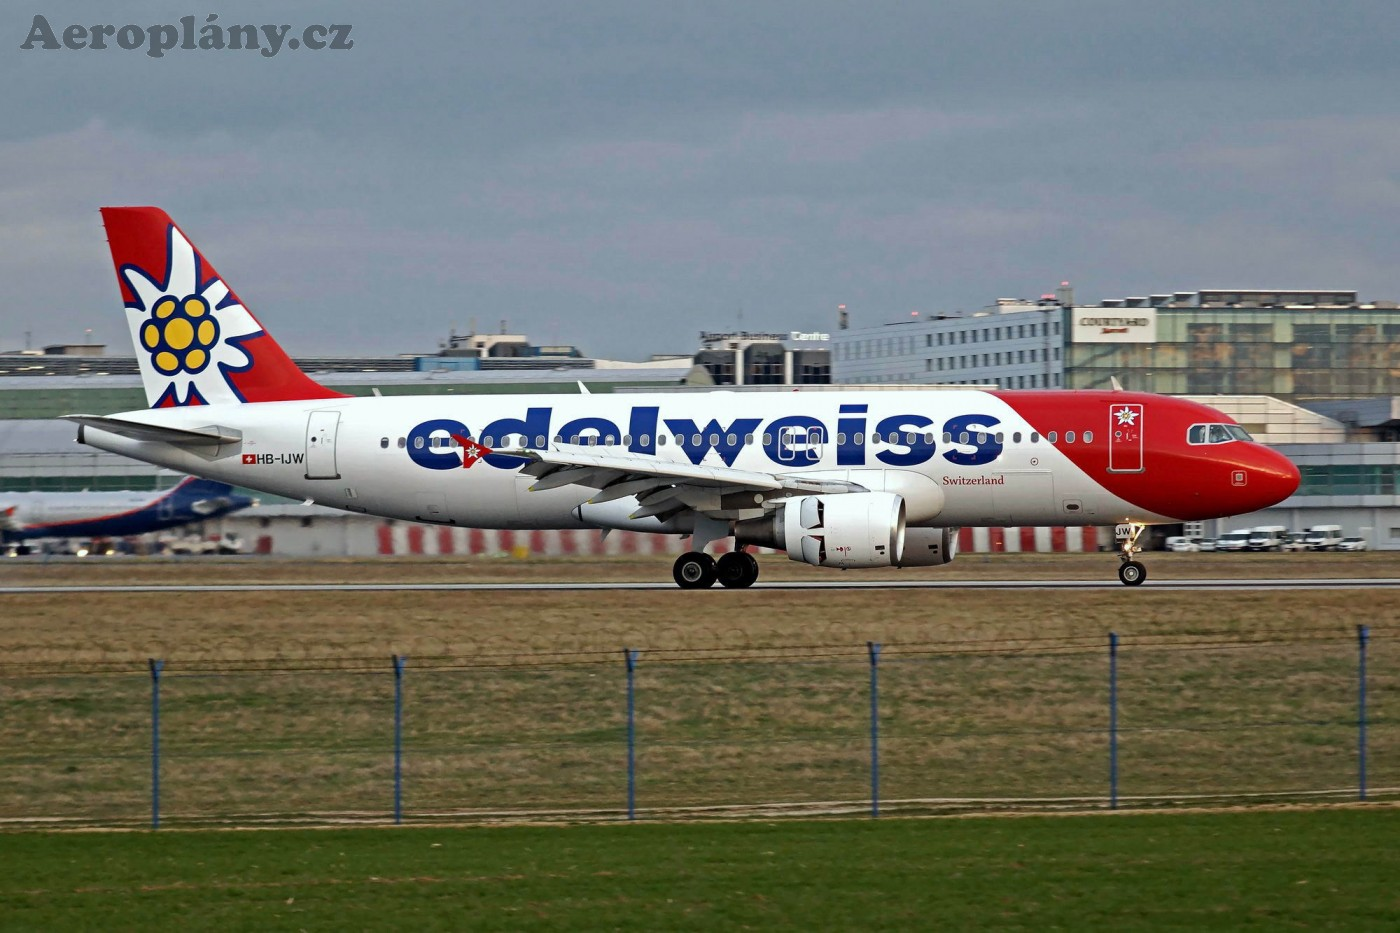 Airbus A320-214 - HB-IJW